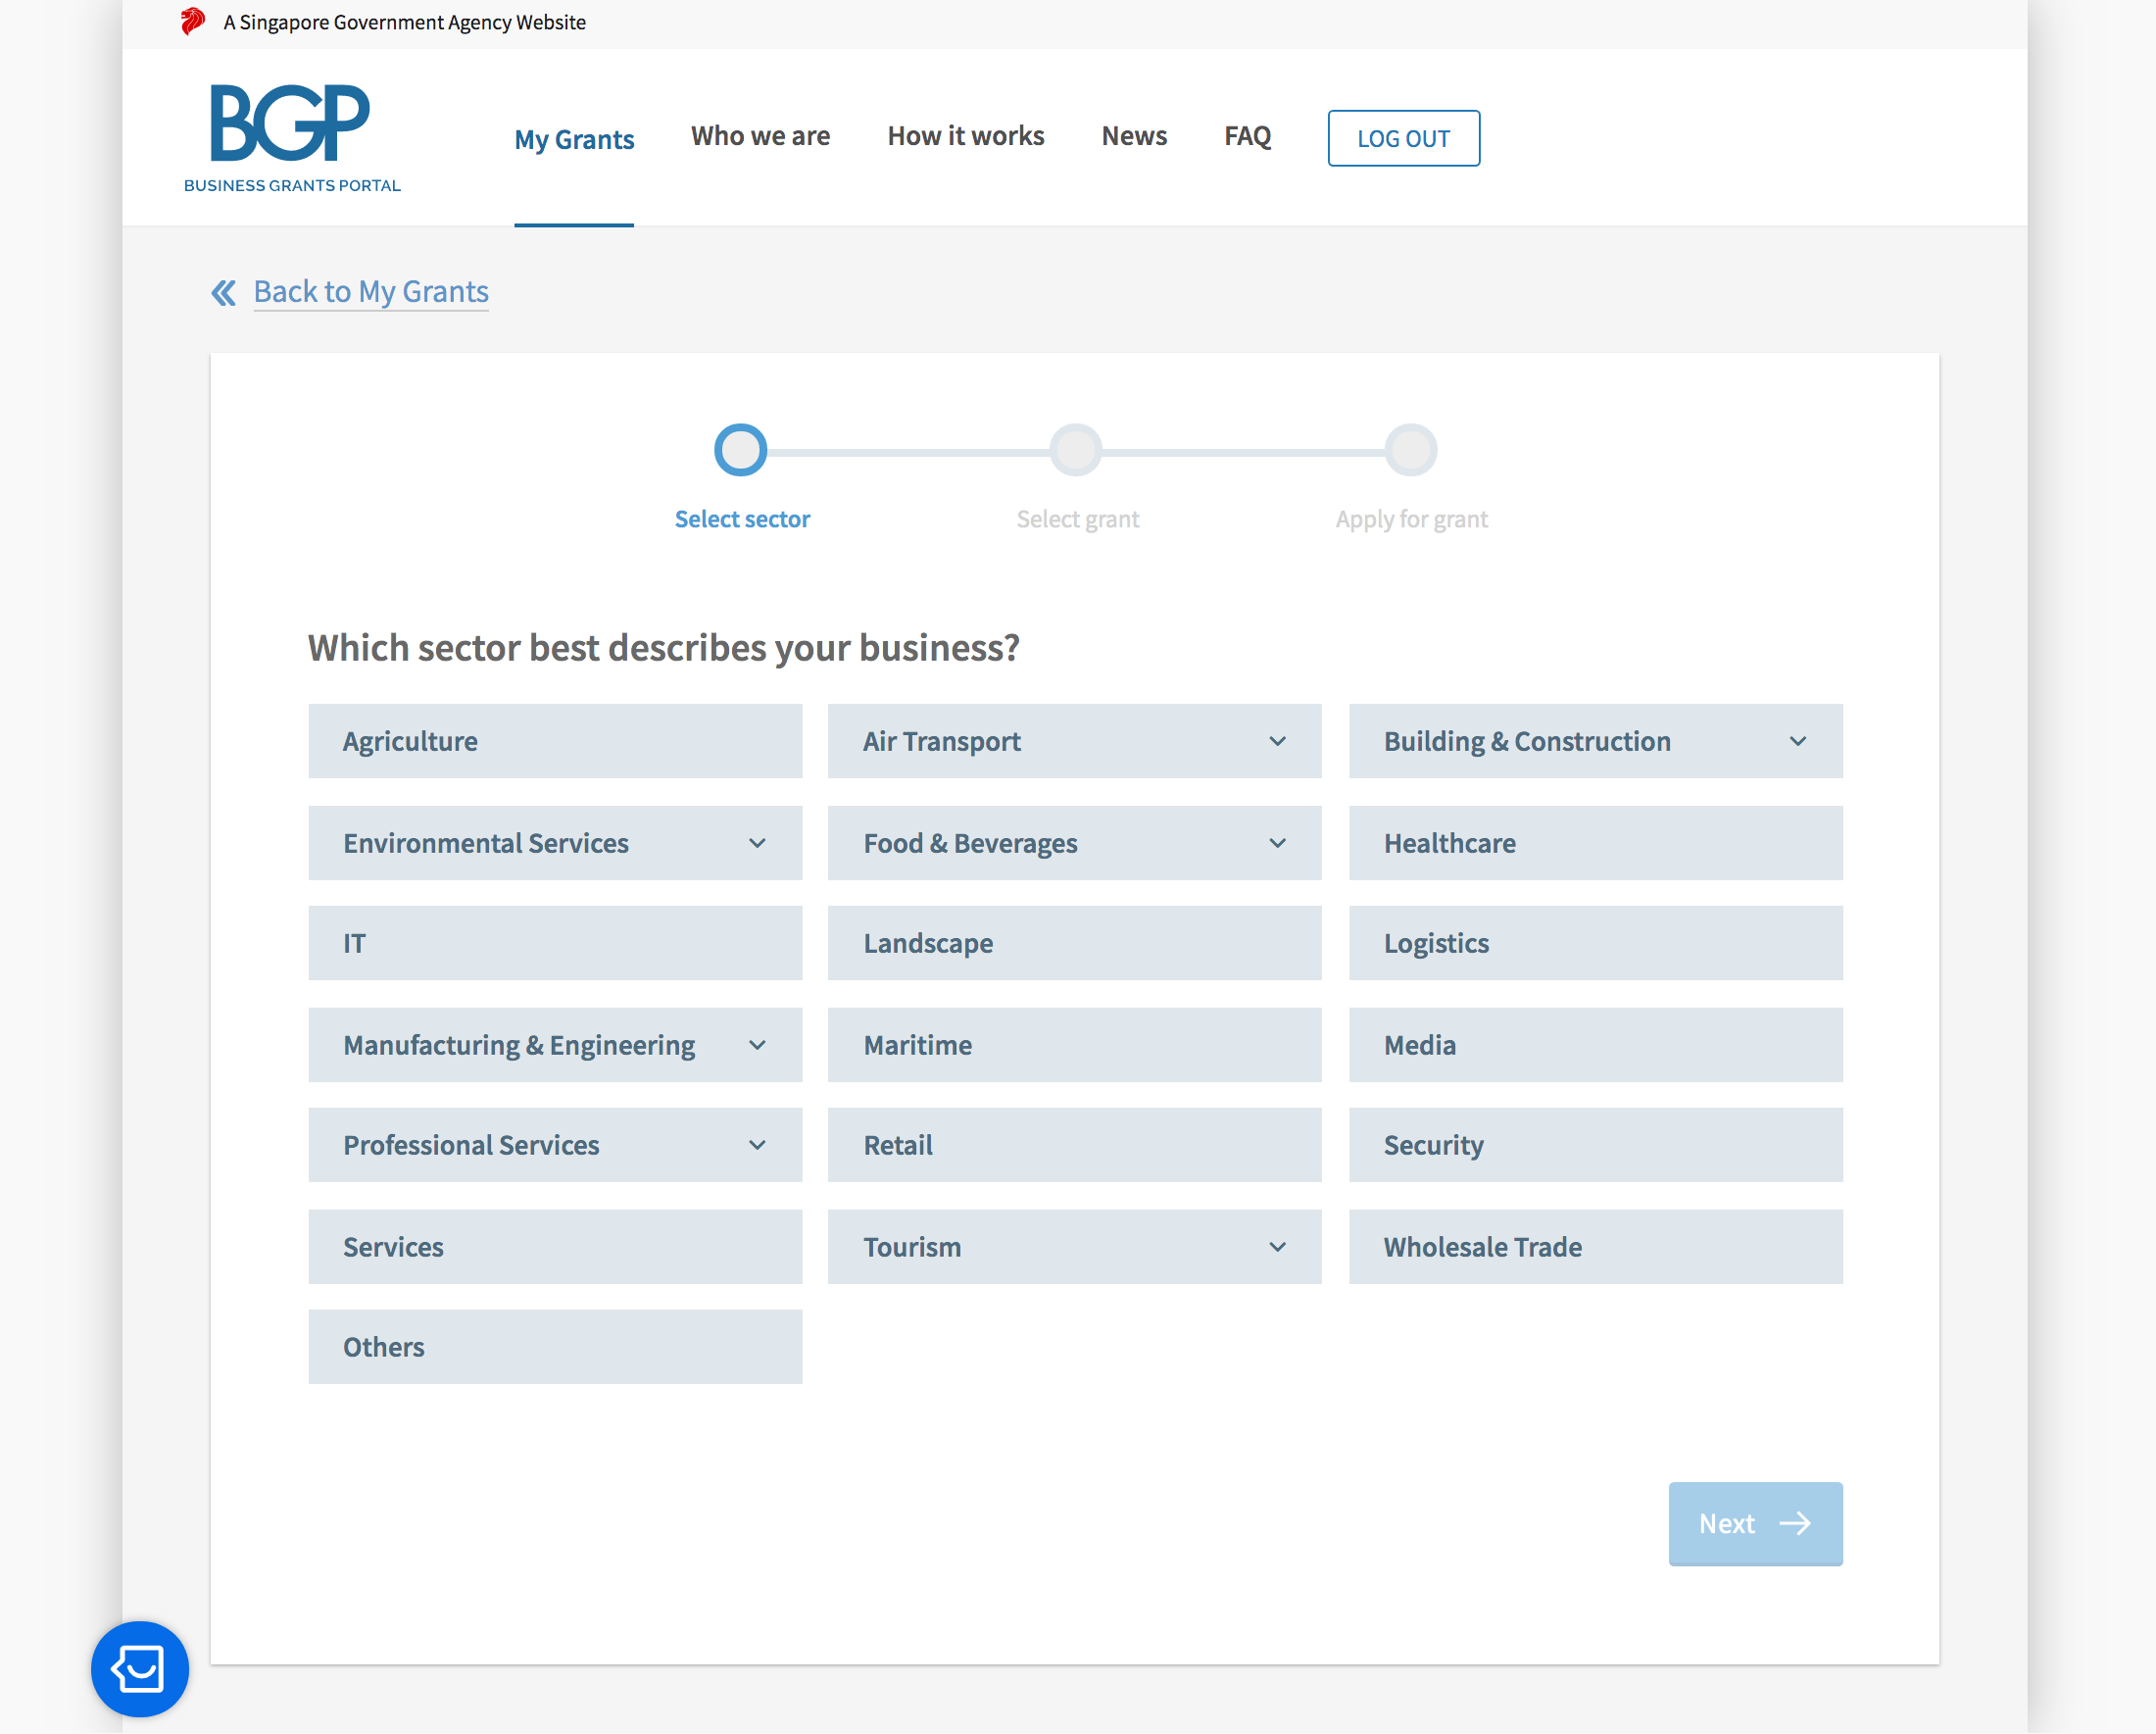 businessgrants-portal-edg-walkthrough3-2019